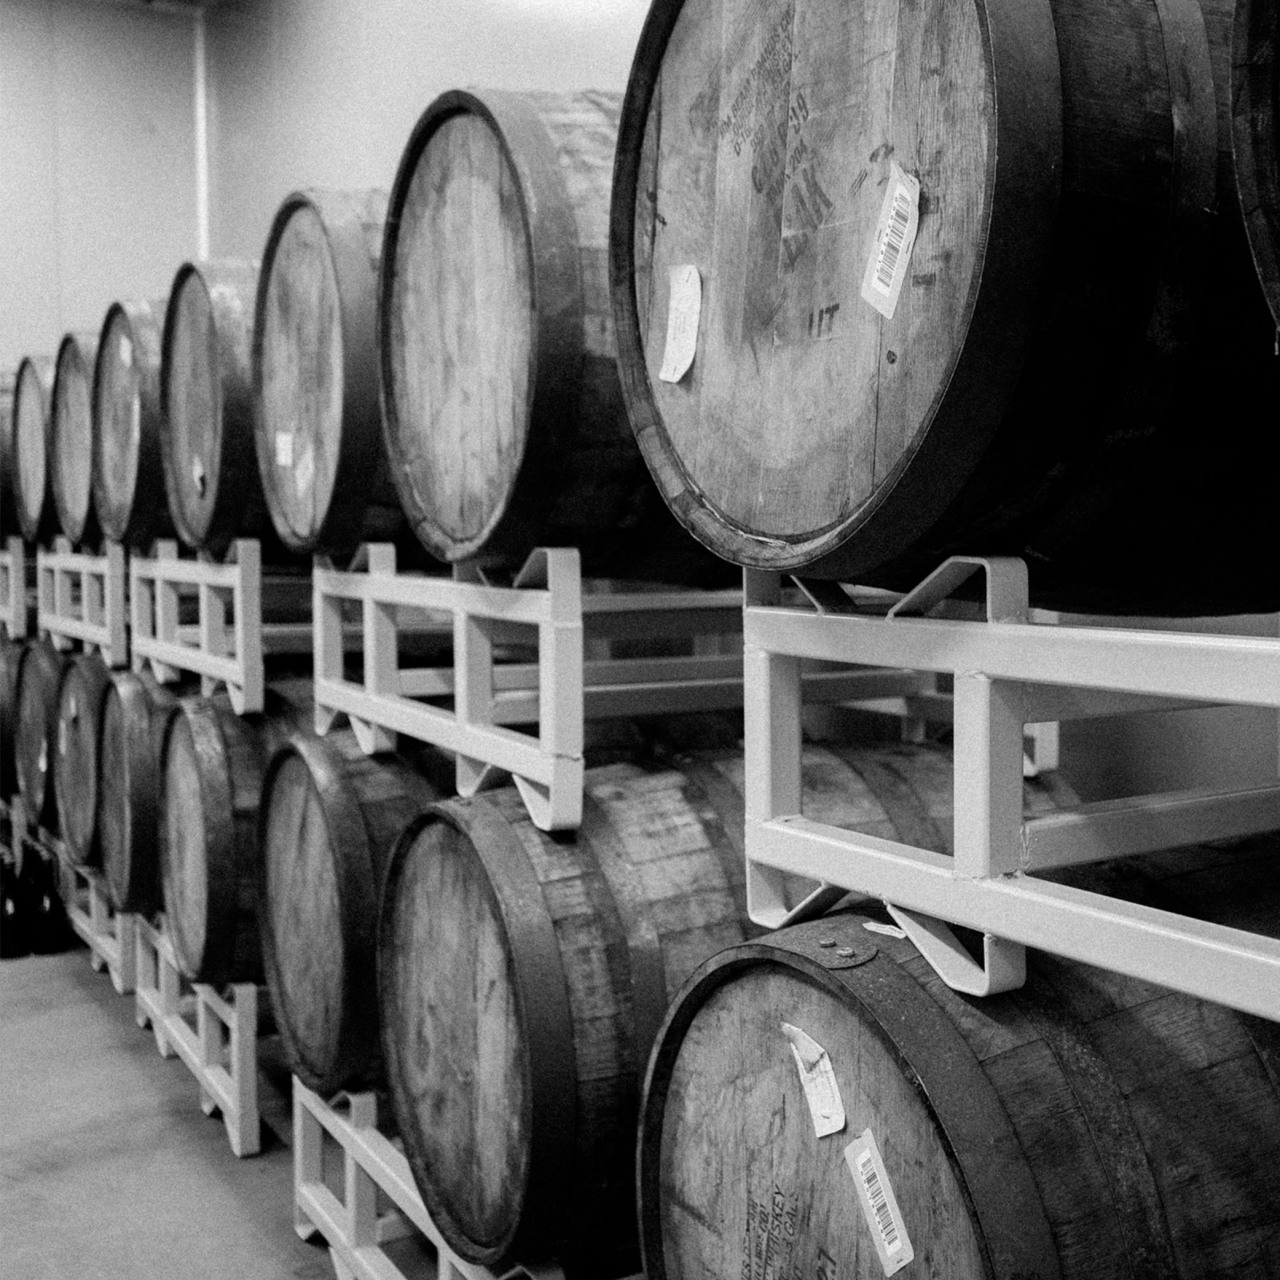 Original Beer Company's Moonlight Scottish ale and Bullrock Imperial stout are aged for approximately three months in oak barrels previously used for bourbon whiskey. (OBC)